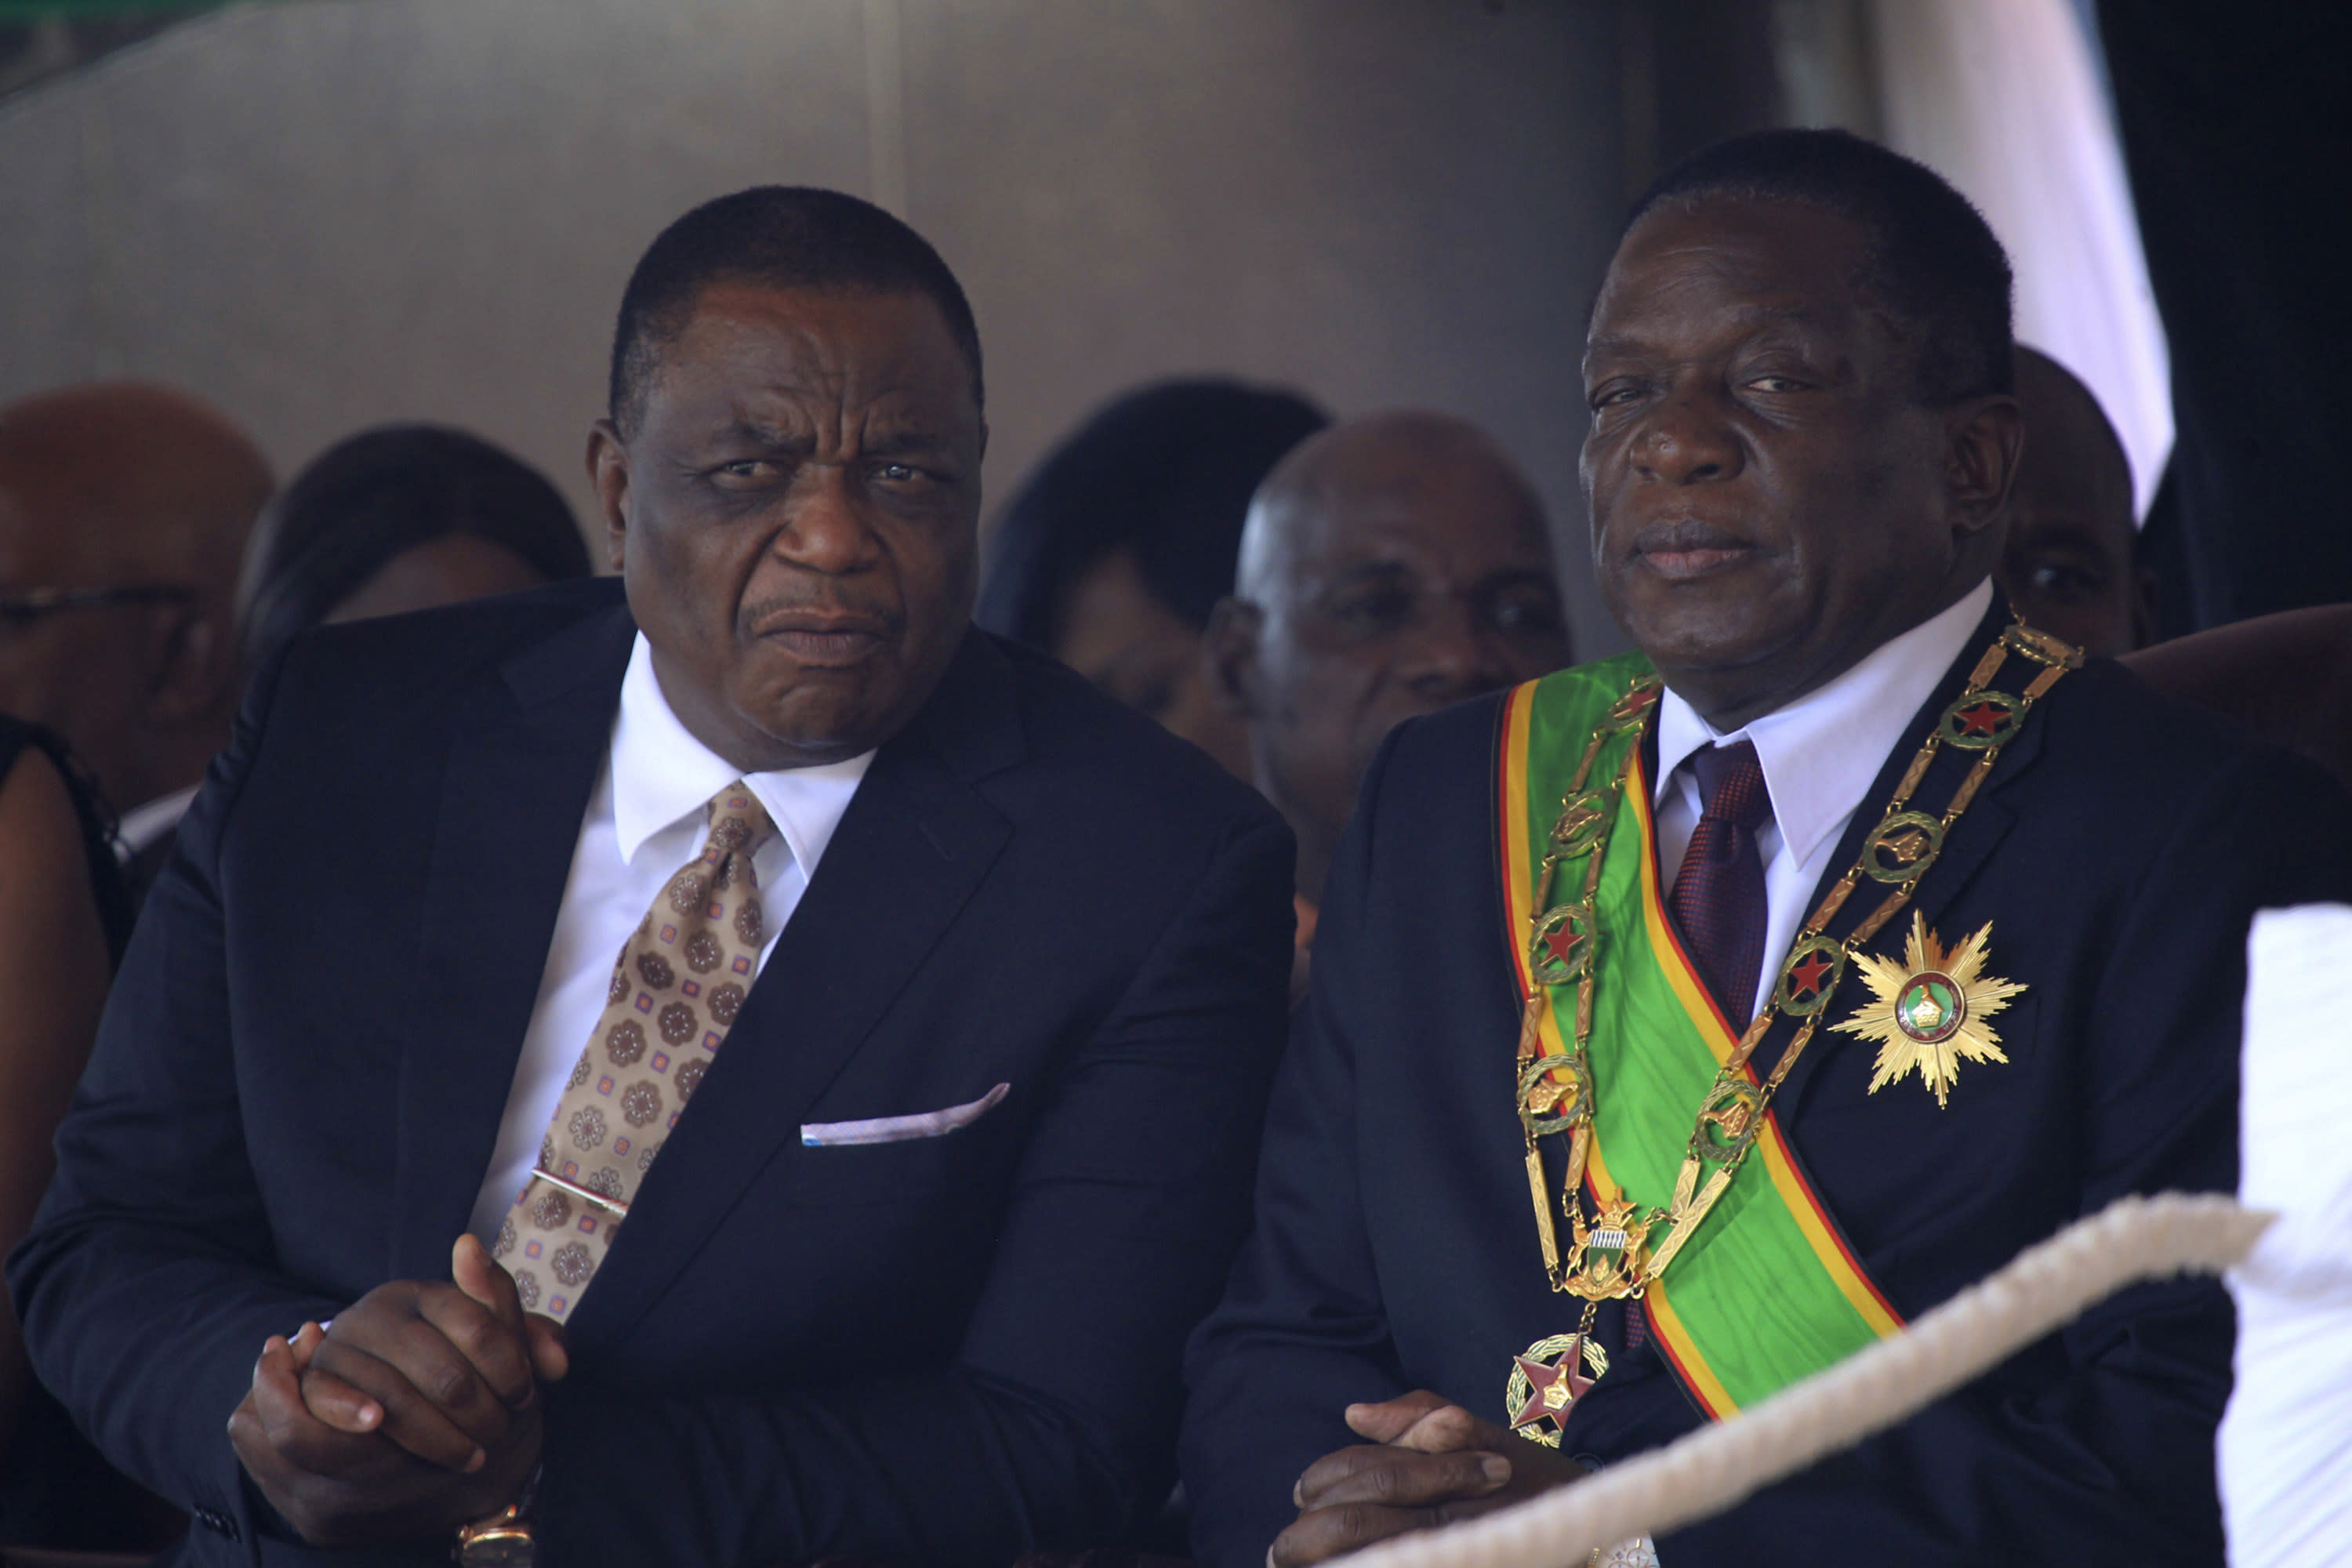 FILE - In this Monday, Aug. 13, 2018, file photo, Zimbabwe's President Emmerson Mnangagwa, right, sits with his Deputy Constantino Chiwenga, left, during a Heroes' Day event in Harare, Zimbabwe. The coronavirus pandemic could narrow one gaping inequality in Africa, where some heads of state and other elite jet off to Europe or Asia for health care unavailable in their nations but as global travel restrictions tighten, they might have to take their chances at home. (AP Photo/Tsvangirayi Mukwazhi, File)